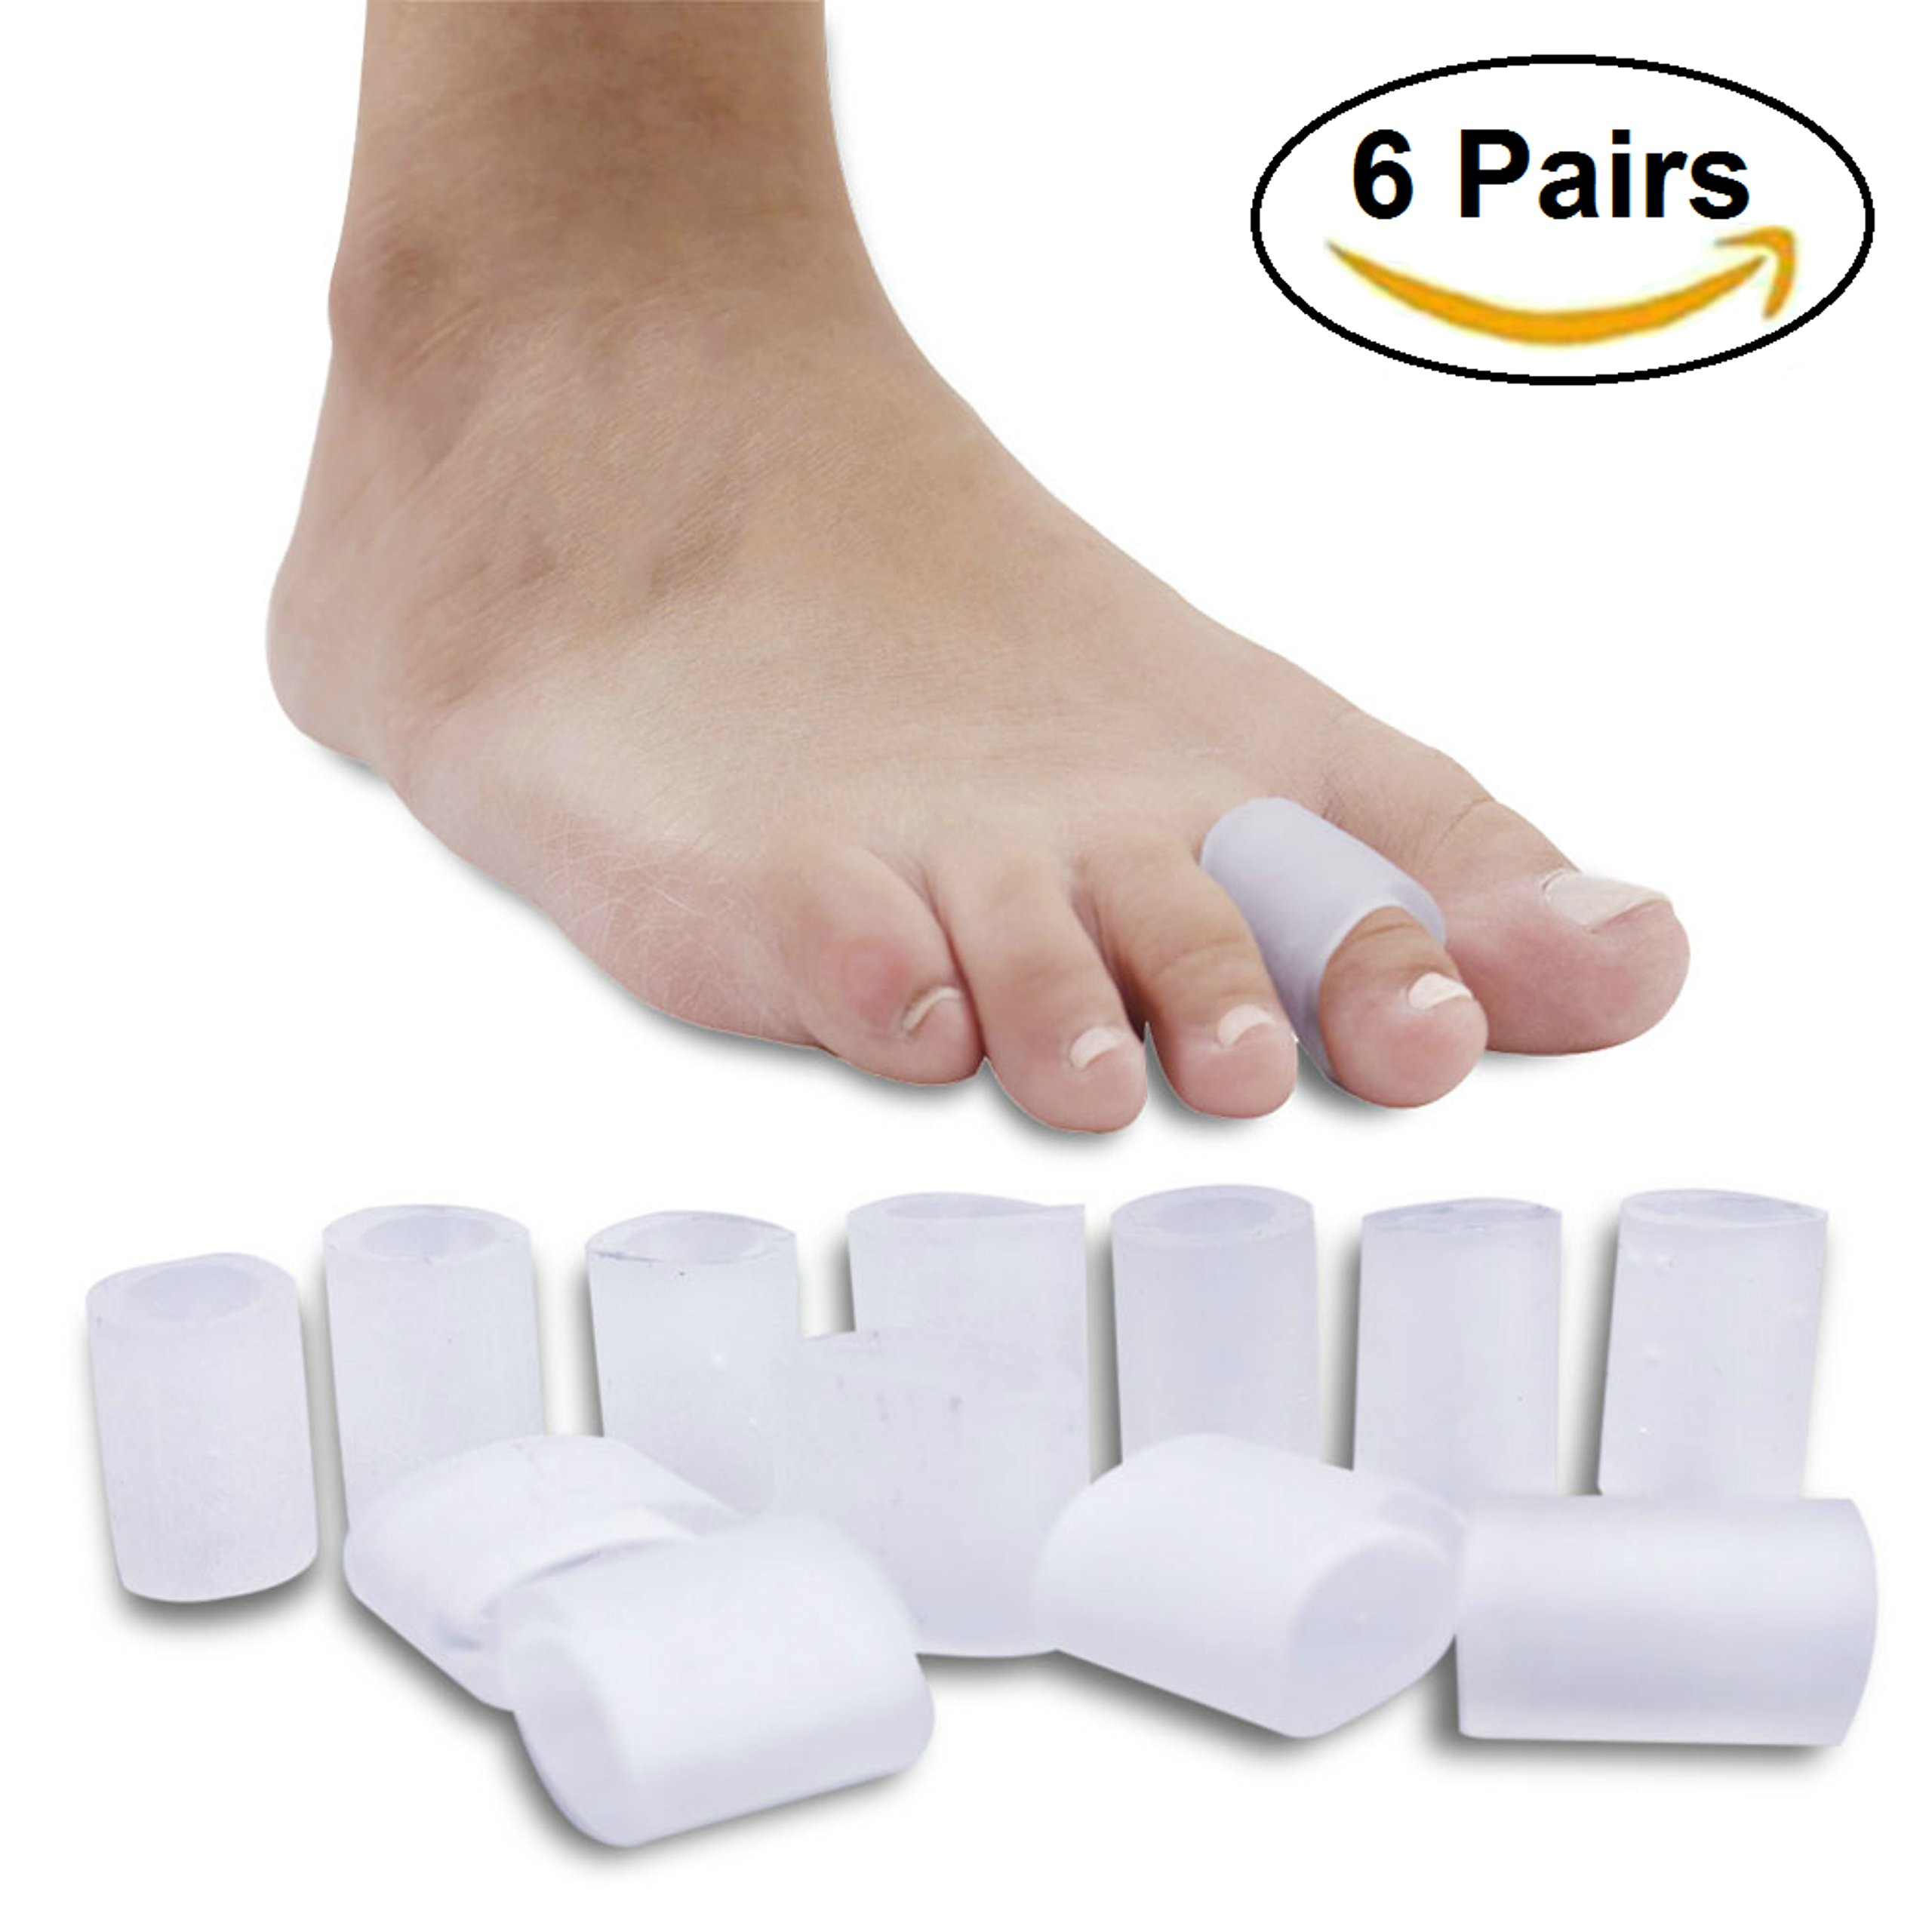 Ortho Pauher Gel Toe Sleeves - Toe Covers for Corns Callus and Blisters Treatment Kit S/M/L (6 Pairs)